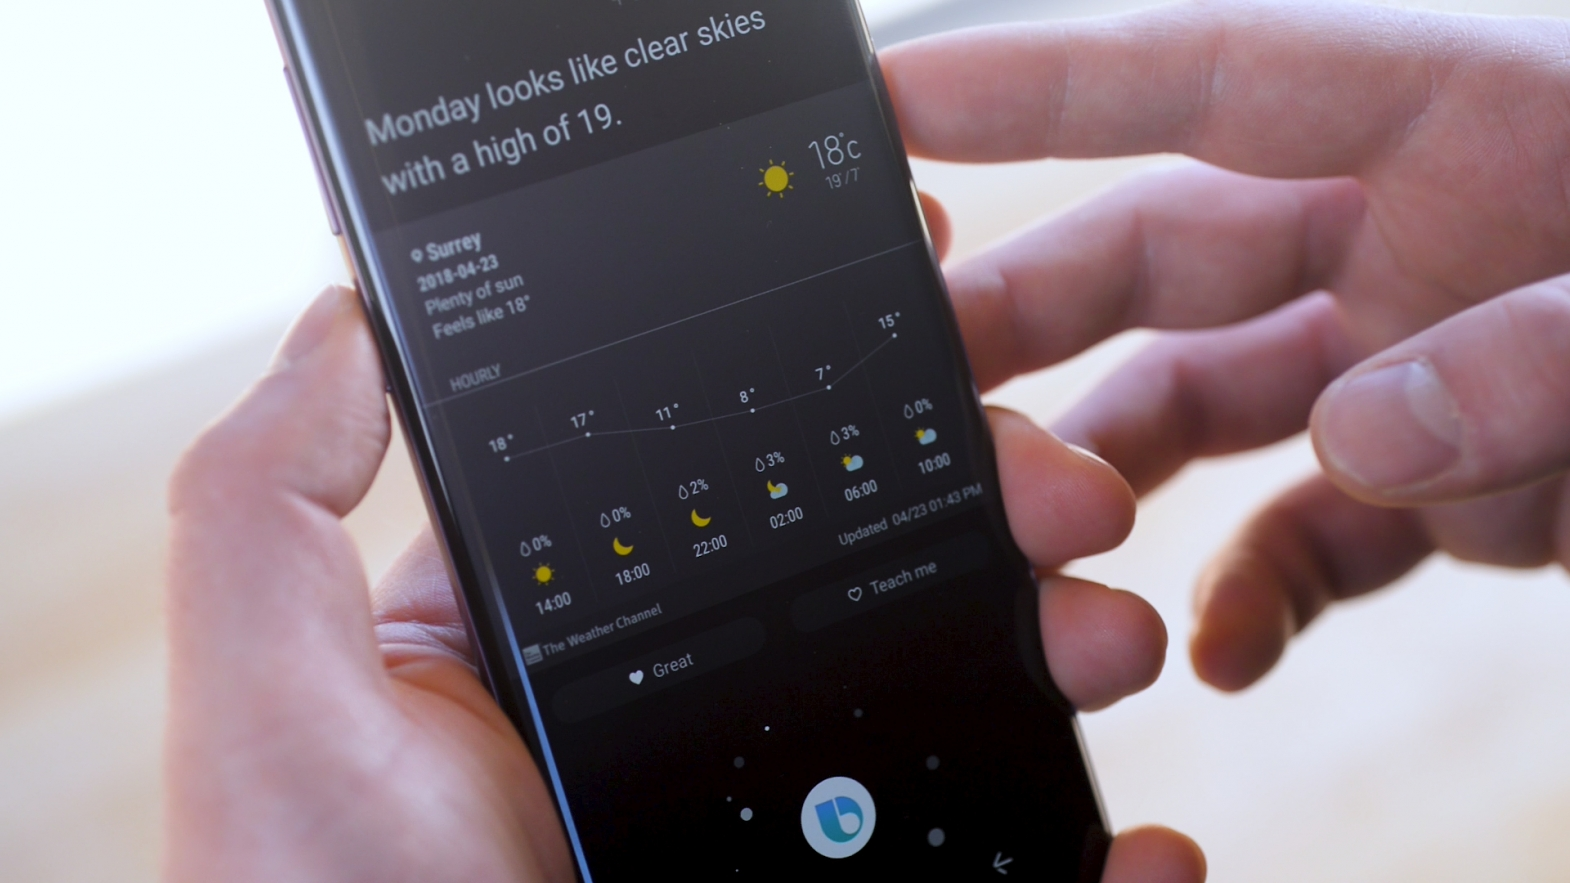 Accessibility Review of Samsung Galaxy S9 and S9+